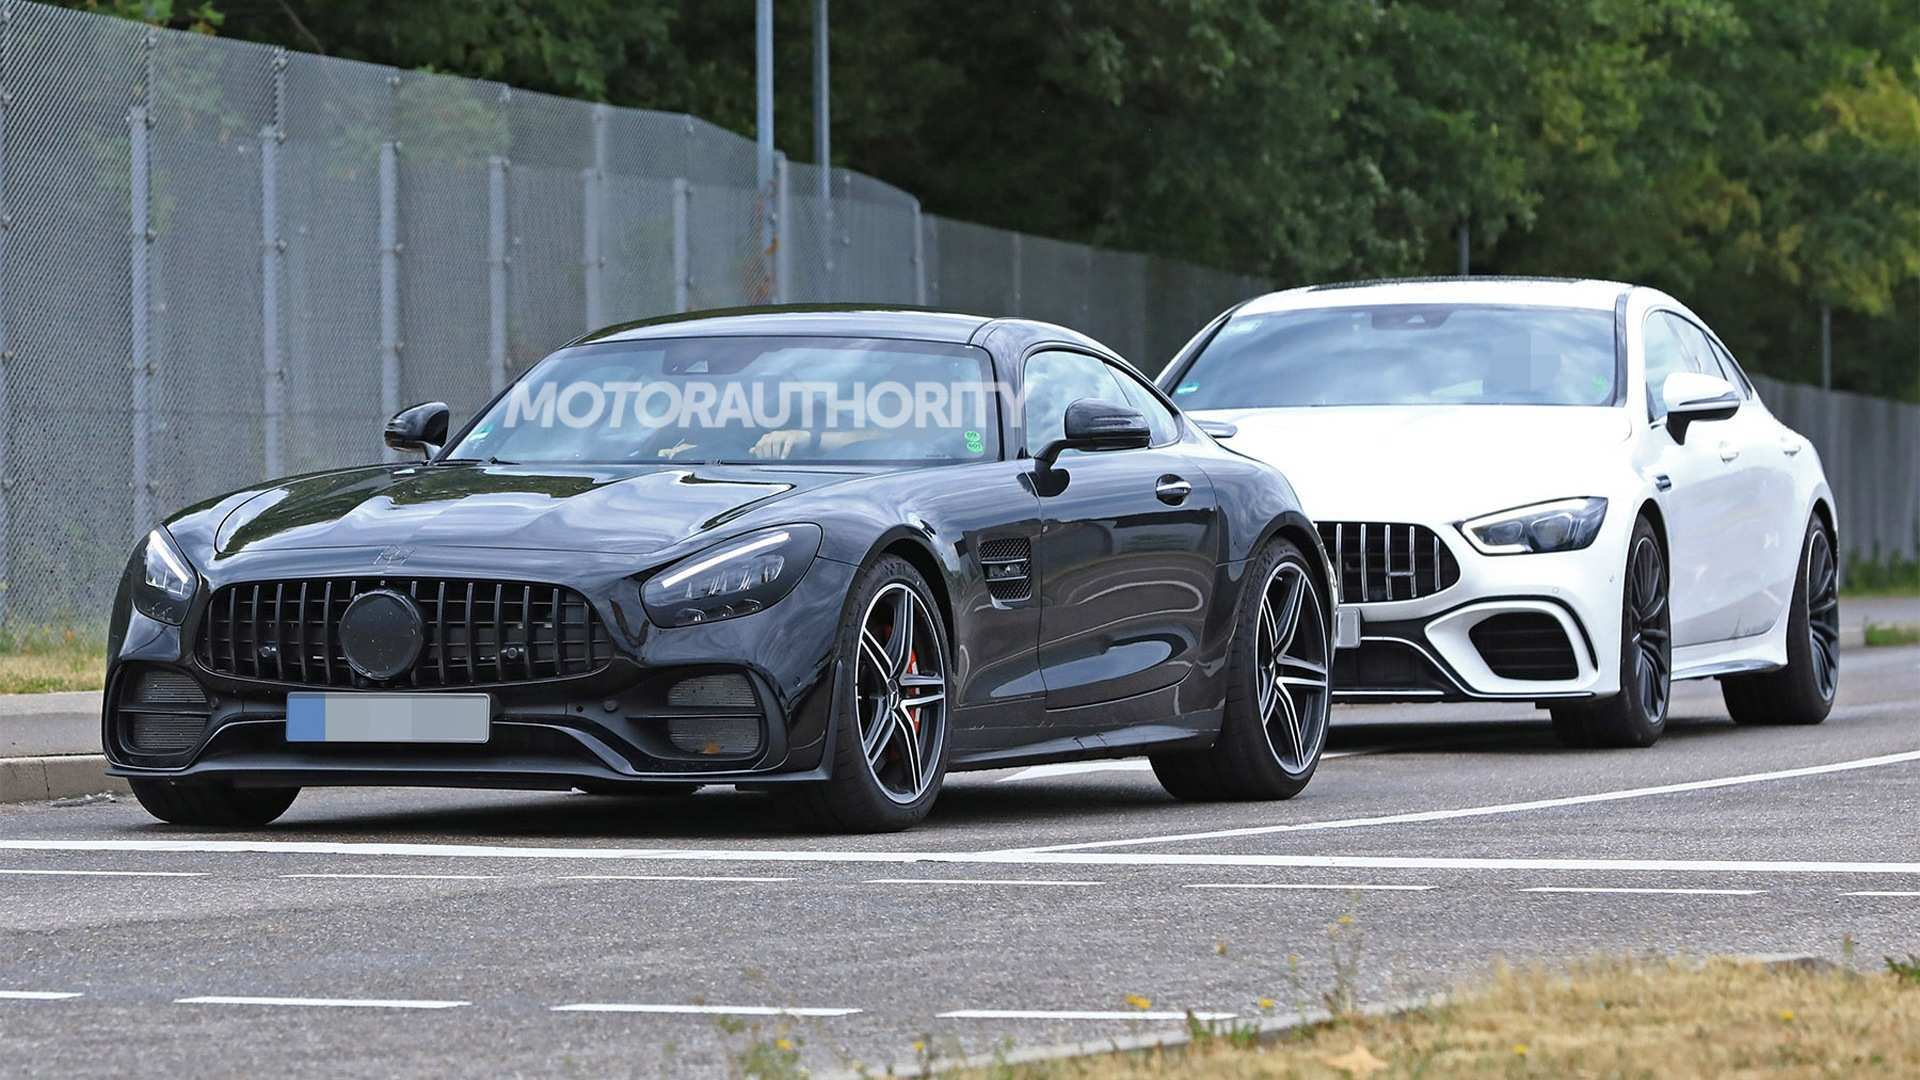 66 Best Review Amg Mercedes 2020 Pictures with Amg Mercedes 2020